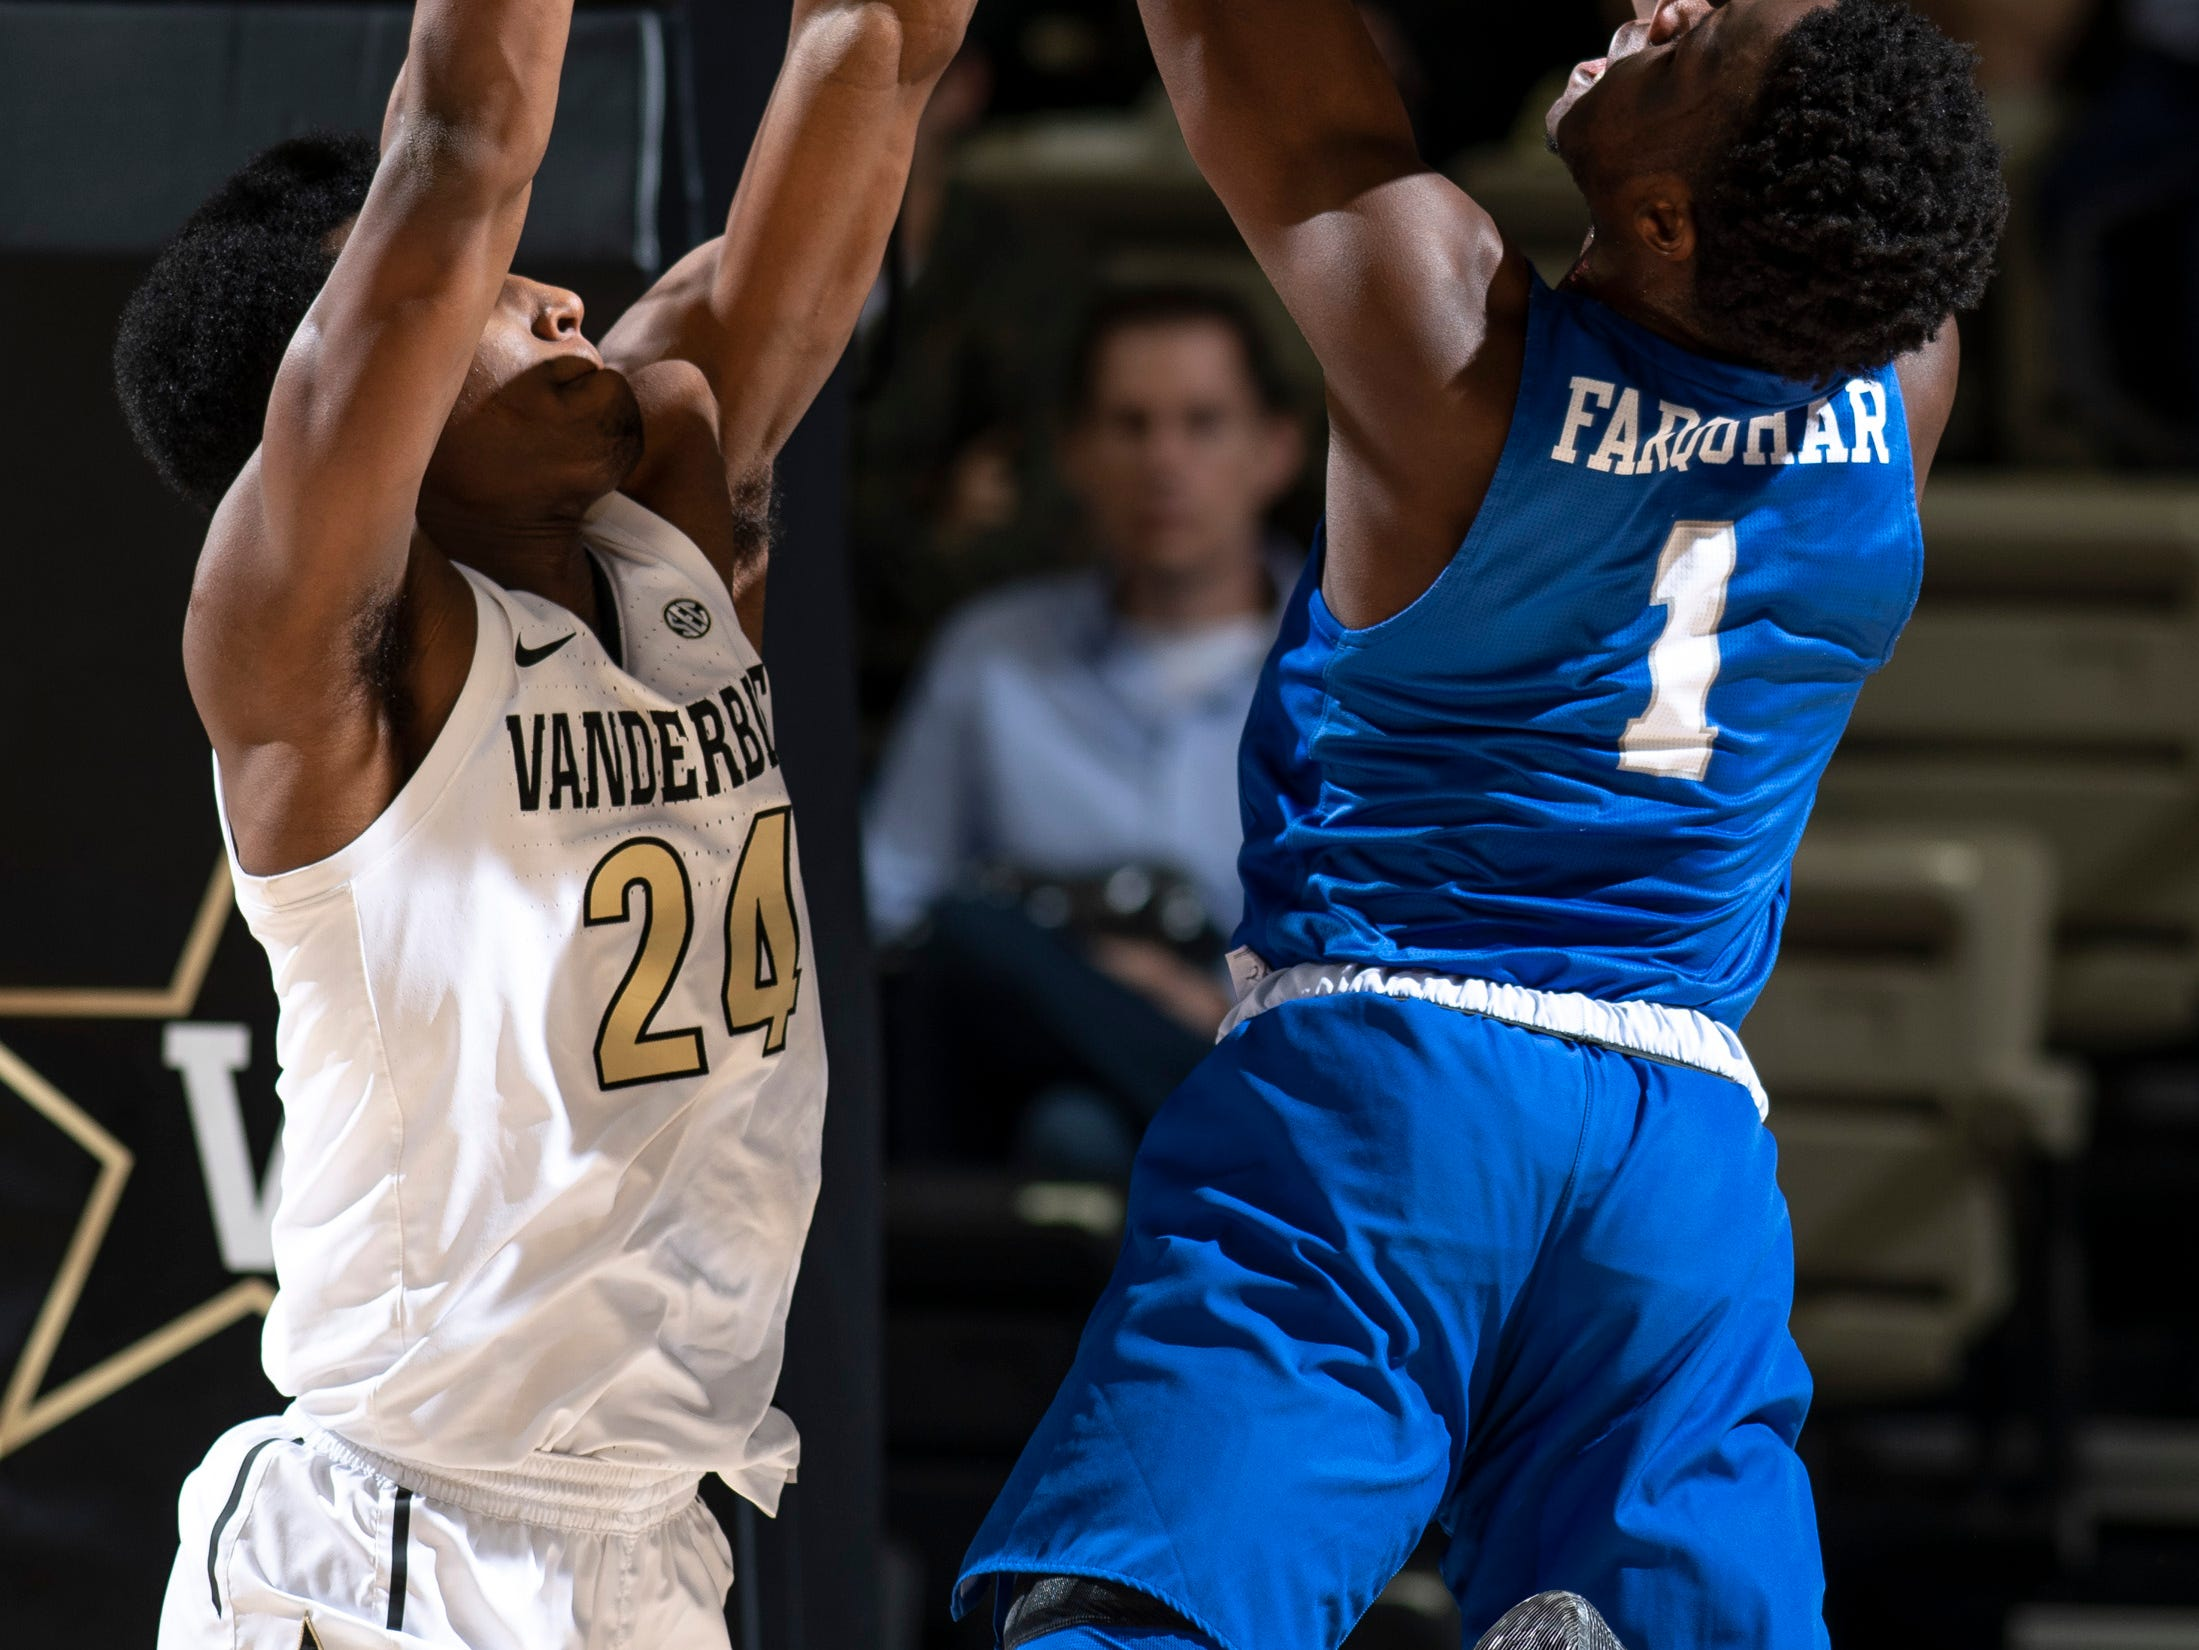 Vanderbilt forward Aaron Nesmith (24) defends against MTSU guard Junior Farquhar (1) during the second half at Memorial Gym in Nashville, Tenn., Wednesday, Dec. 5, 2018.